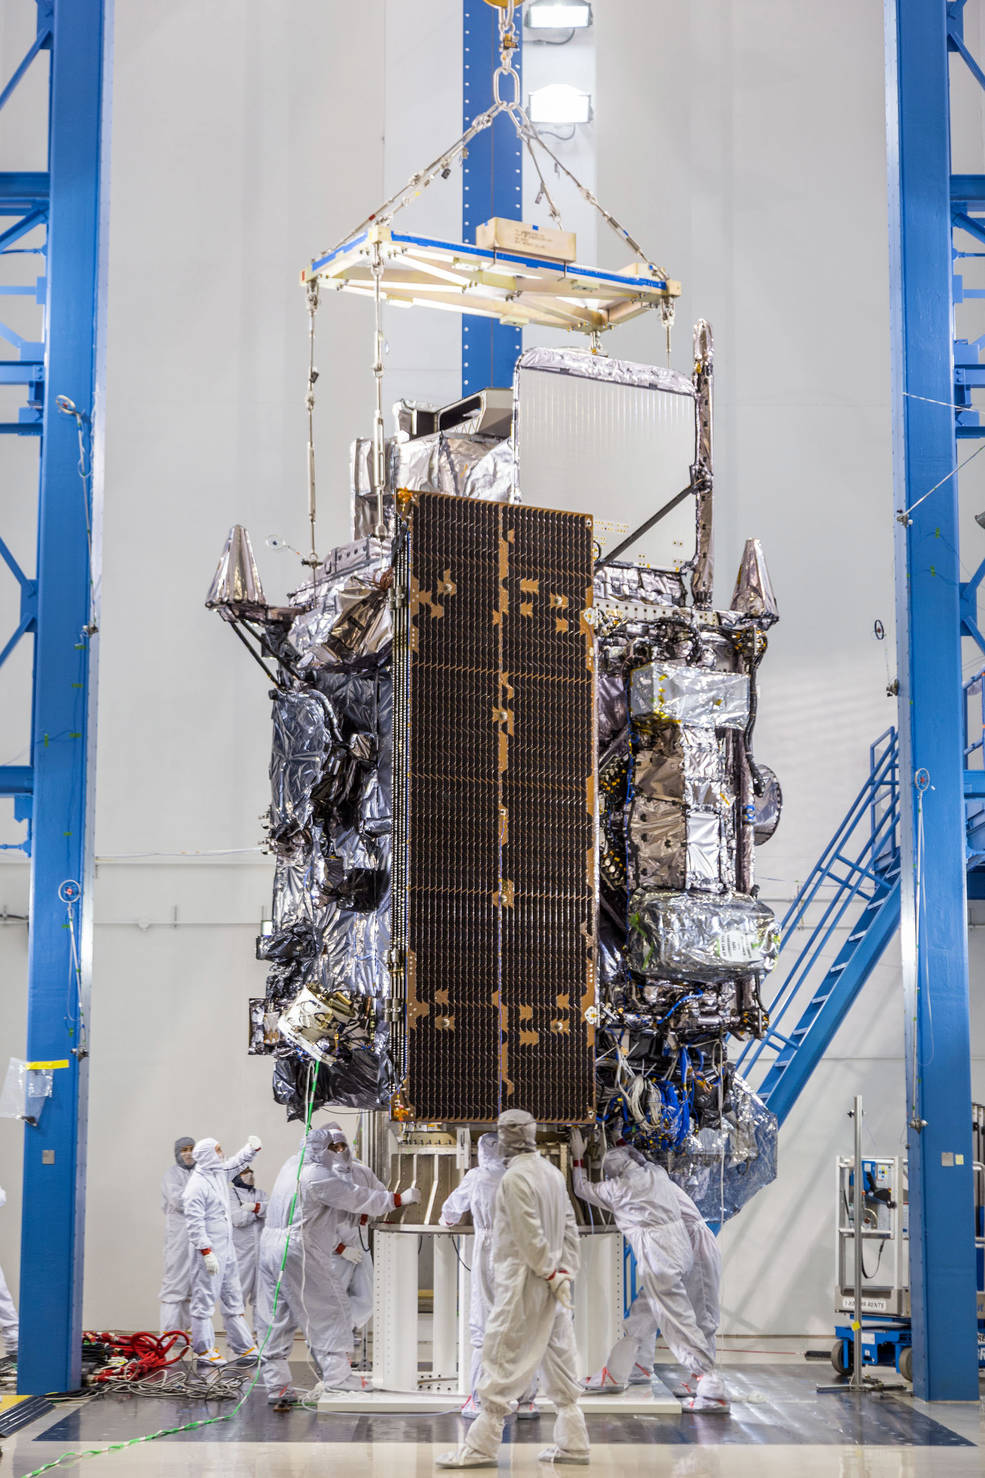 men in paper suits surround satellite in cleanroom